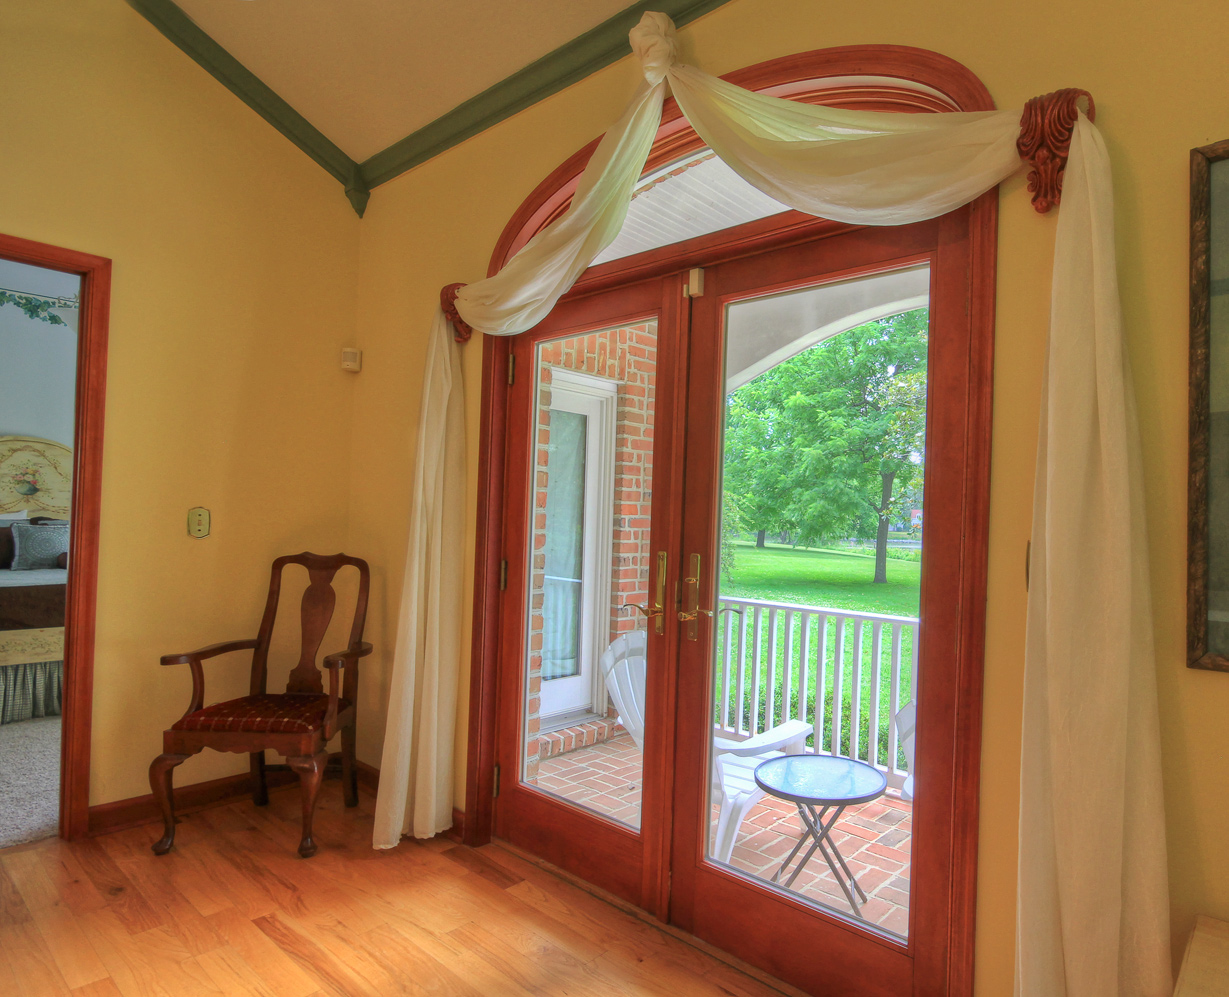 french doors leading to back porch and chair in corner at combsberry inn main house